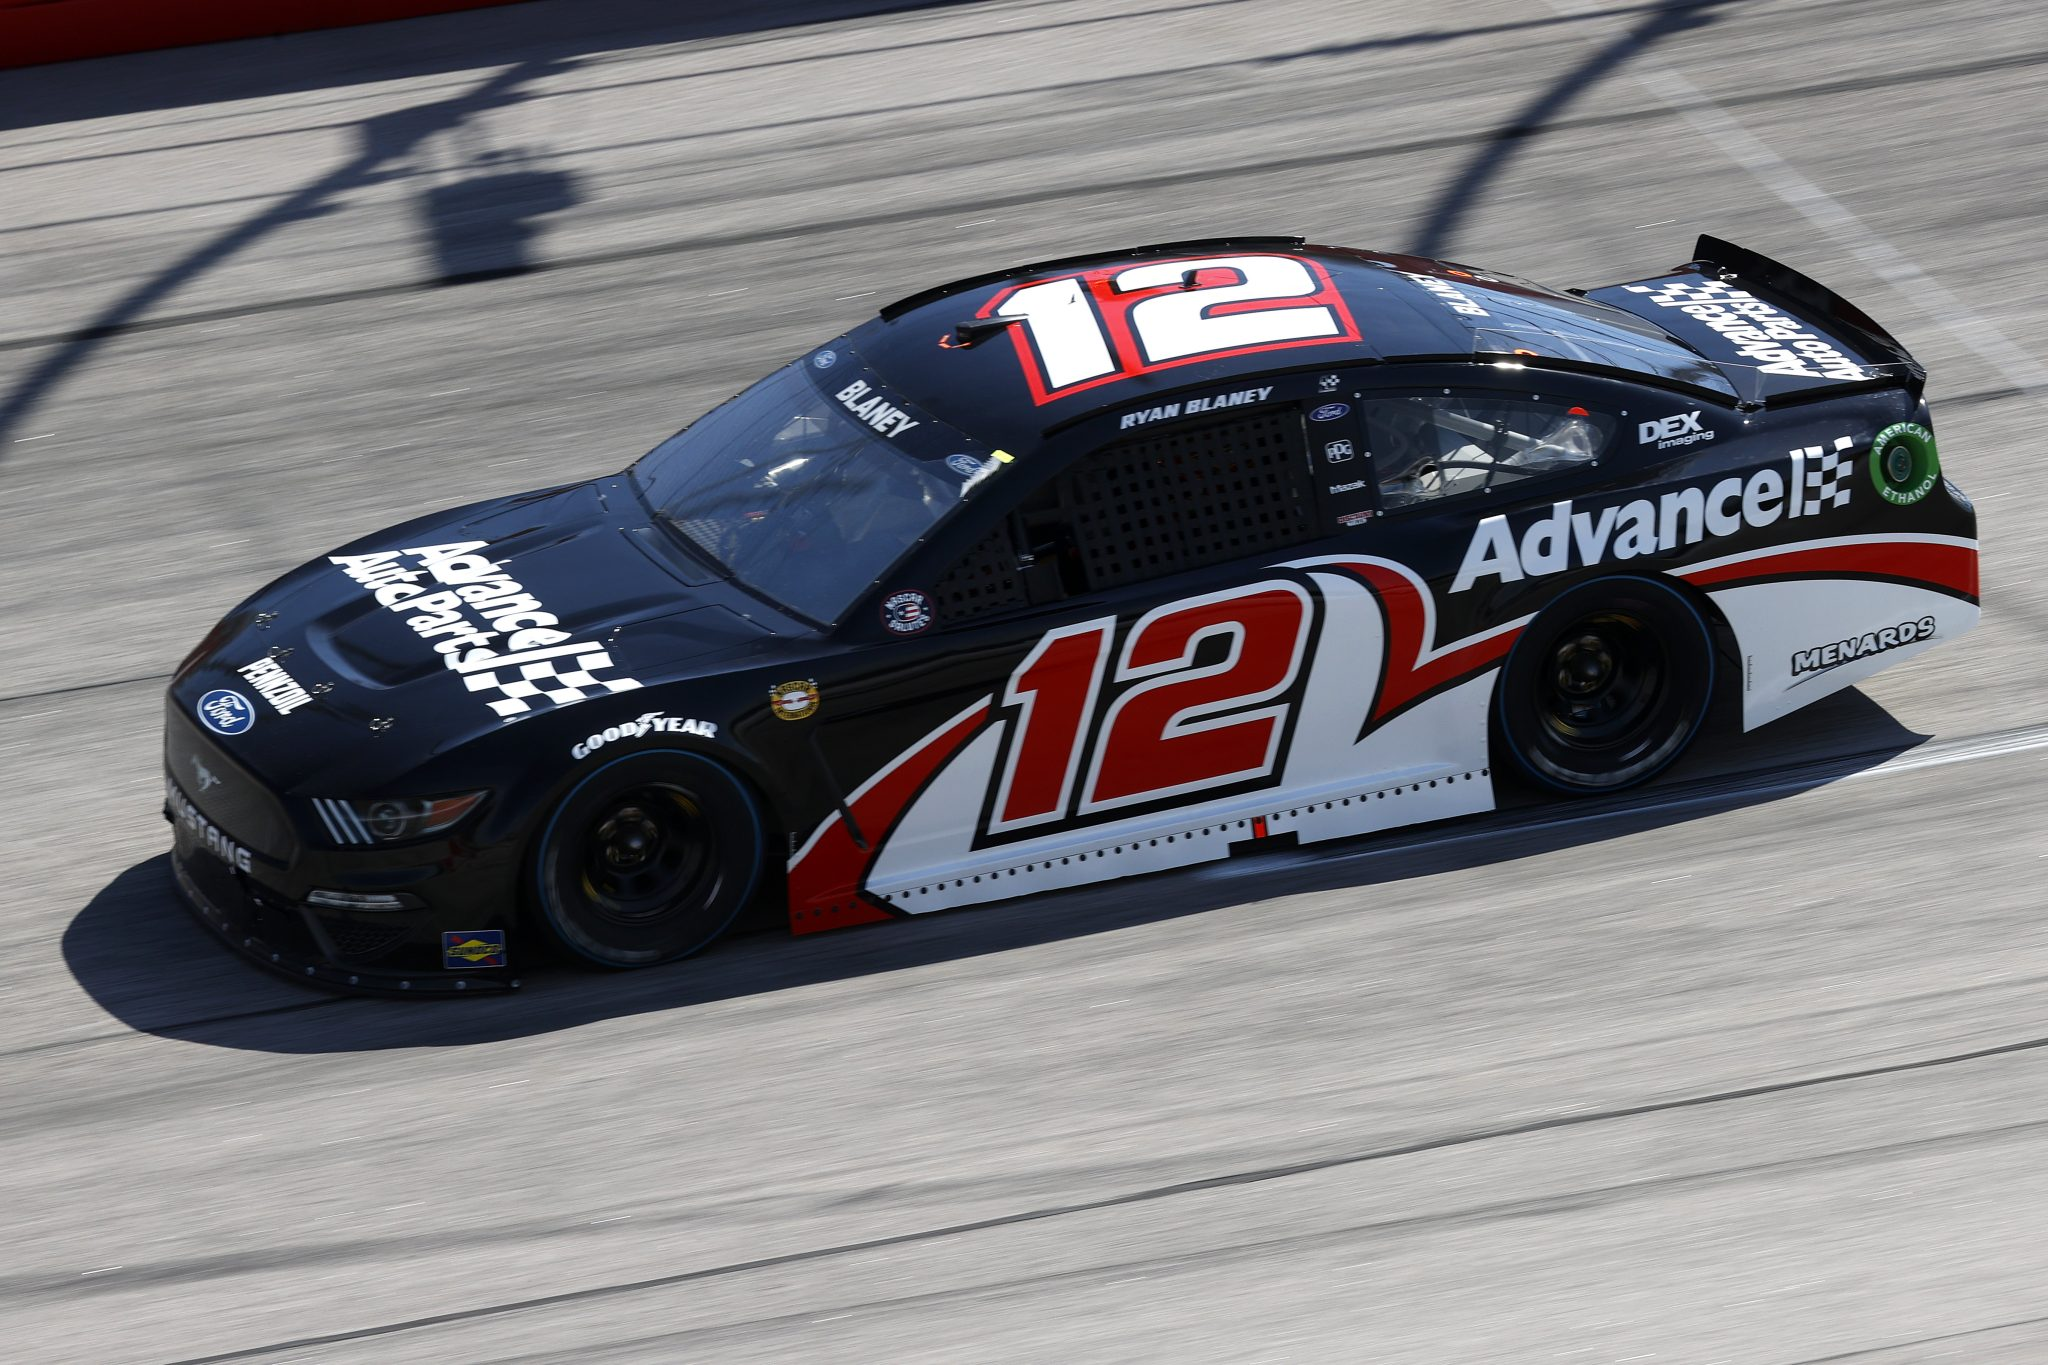 DARLINGTON, SOUTH CAROLINA - MAY 09: Ryan Blaney, driver of the #12 Advance Auto Parts Ford, drives during the NASCAR Cup Series Goodyear 400 at Darlington Raceway on May 09, 2021 in Darlington, South Carolina. (Photo by Chris Graythen/Getty Images) | Getty Images